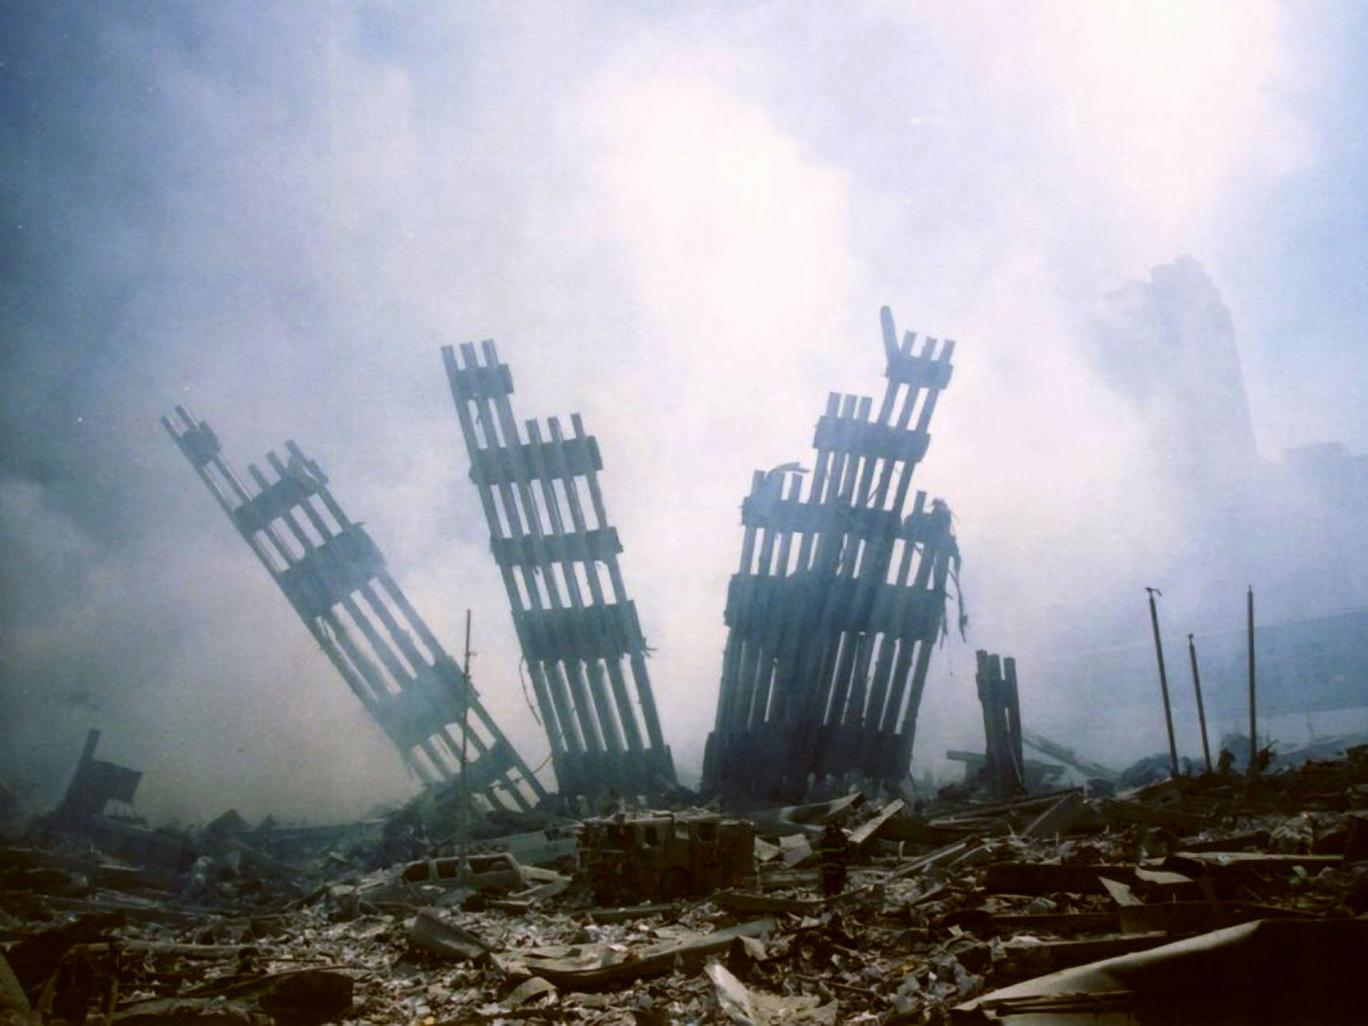 The remains of the World Trade Center stands amid the debris following the terrorist attack on the building in New York